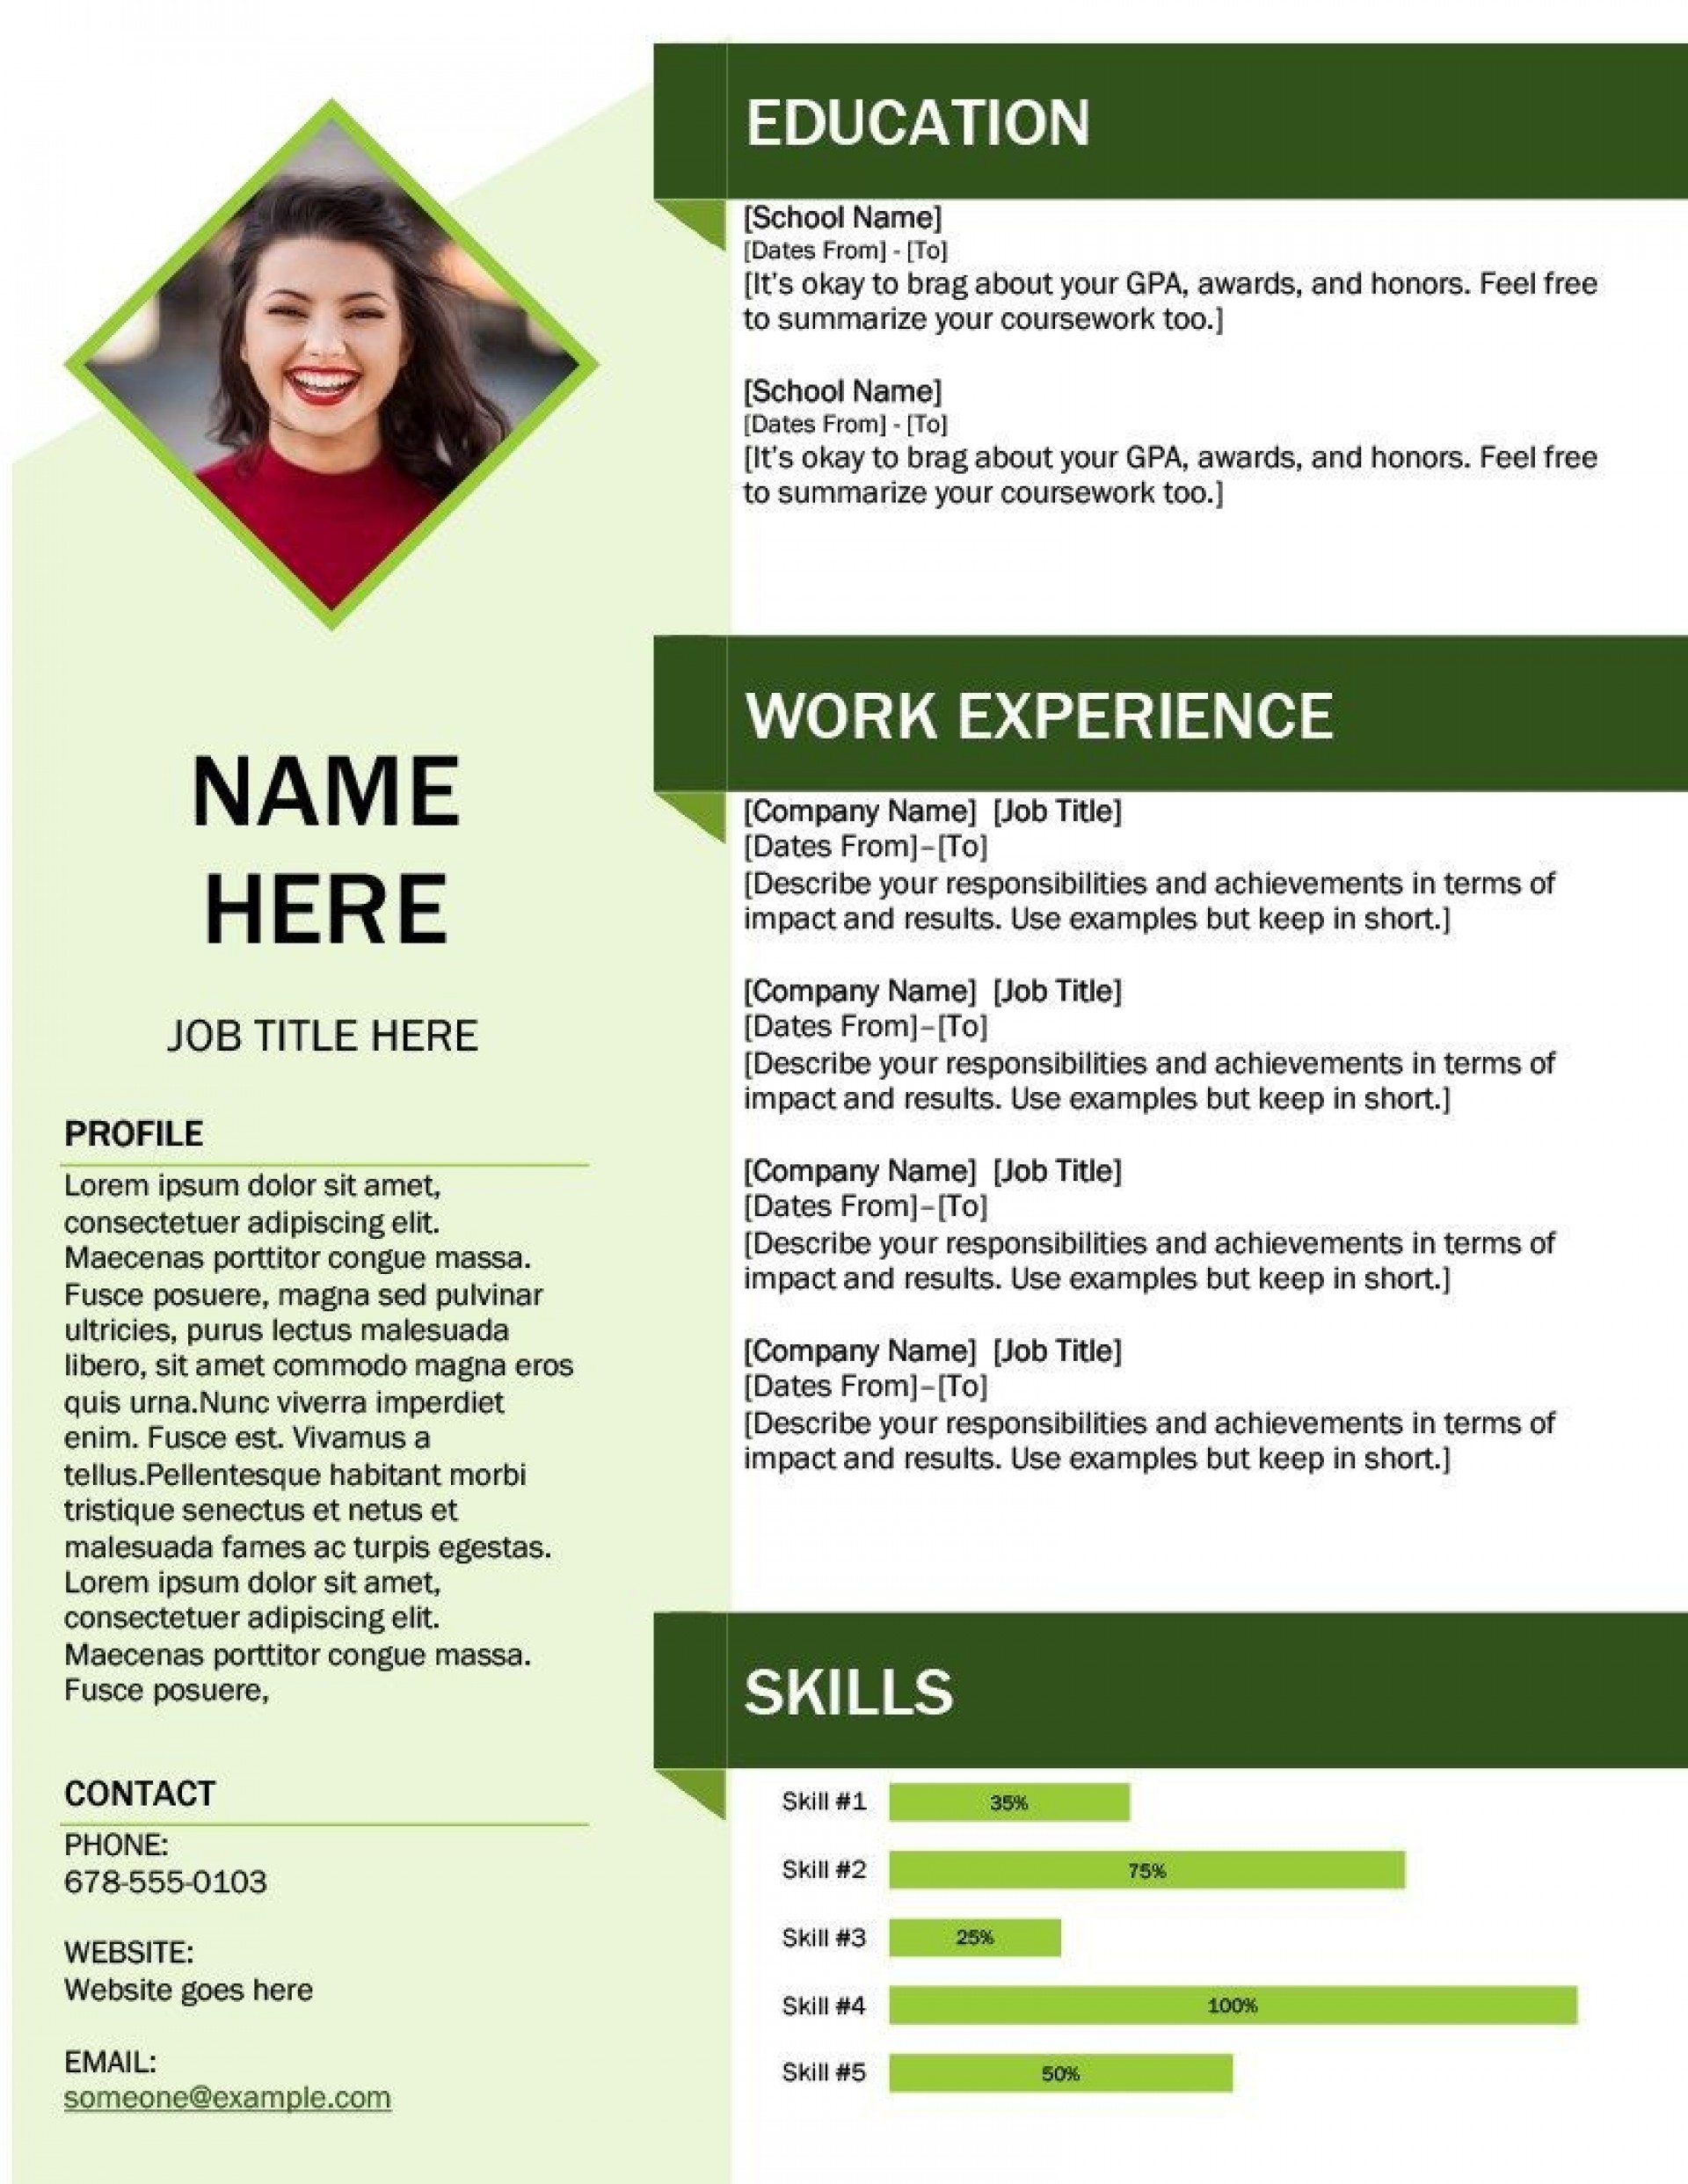 003 Marvelou Word Resume Template Free Download Idea  M Creative Curriculum Vitae Cv1920